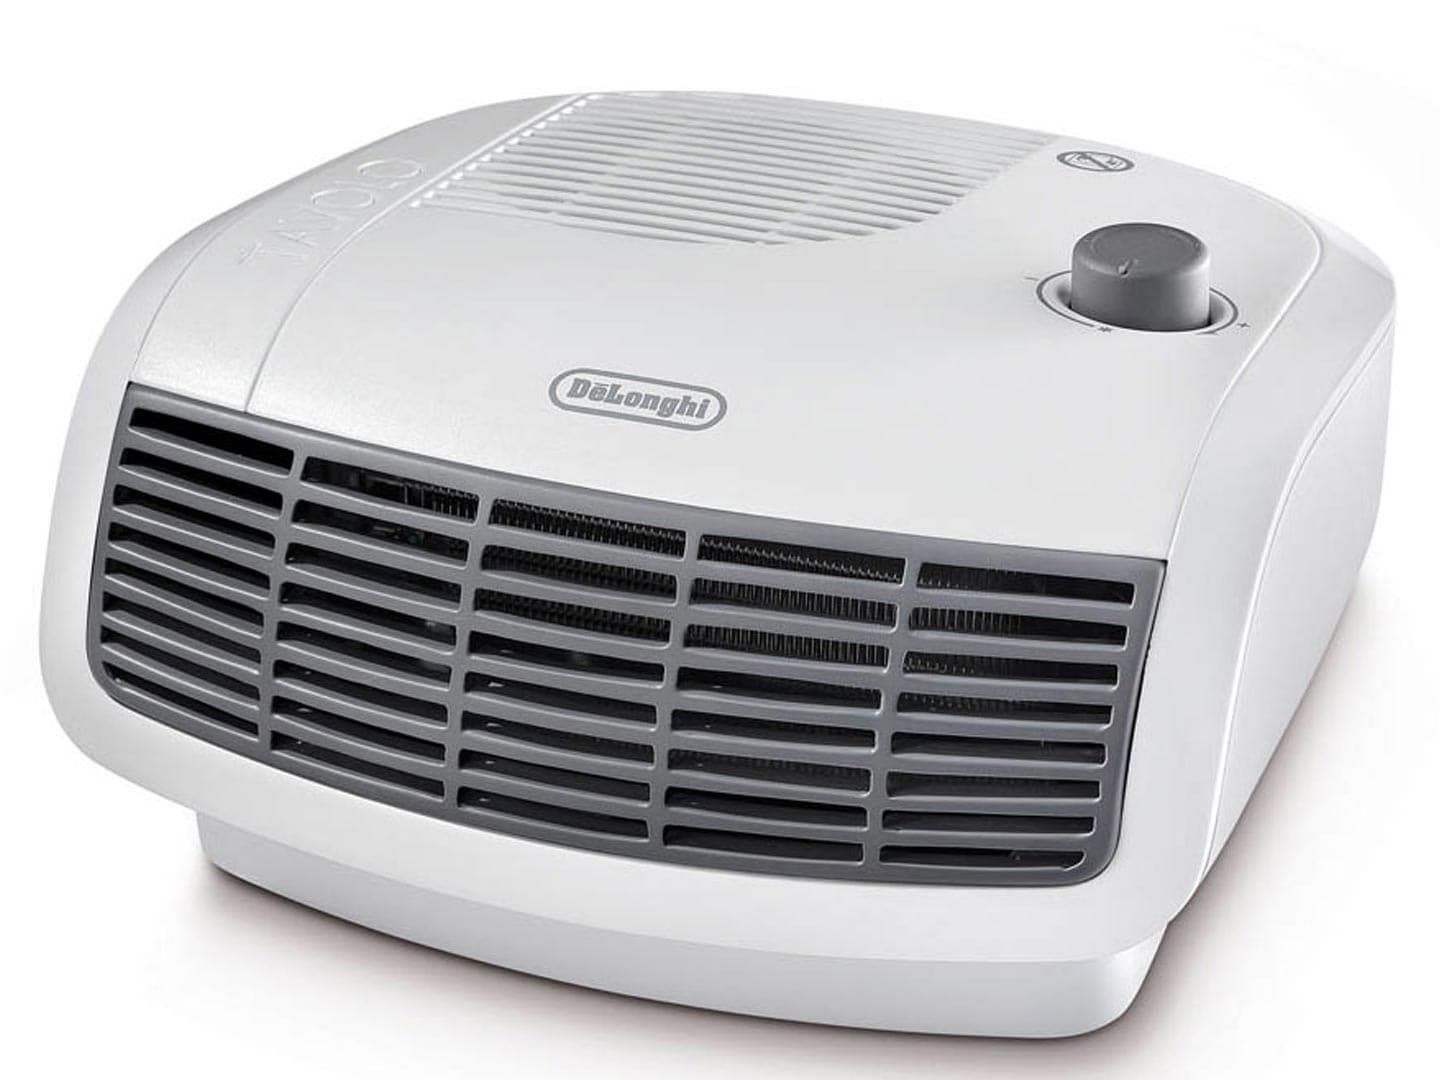 http://www.delonghi.com/Global/Products/Images/Portable-Heating/Fan-Heaters/Table-Top-Htf-3020/HTF-3020-left.jpg